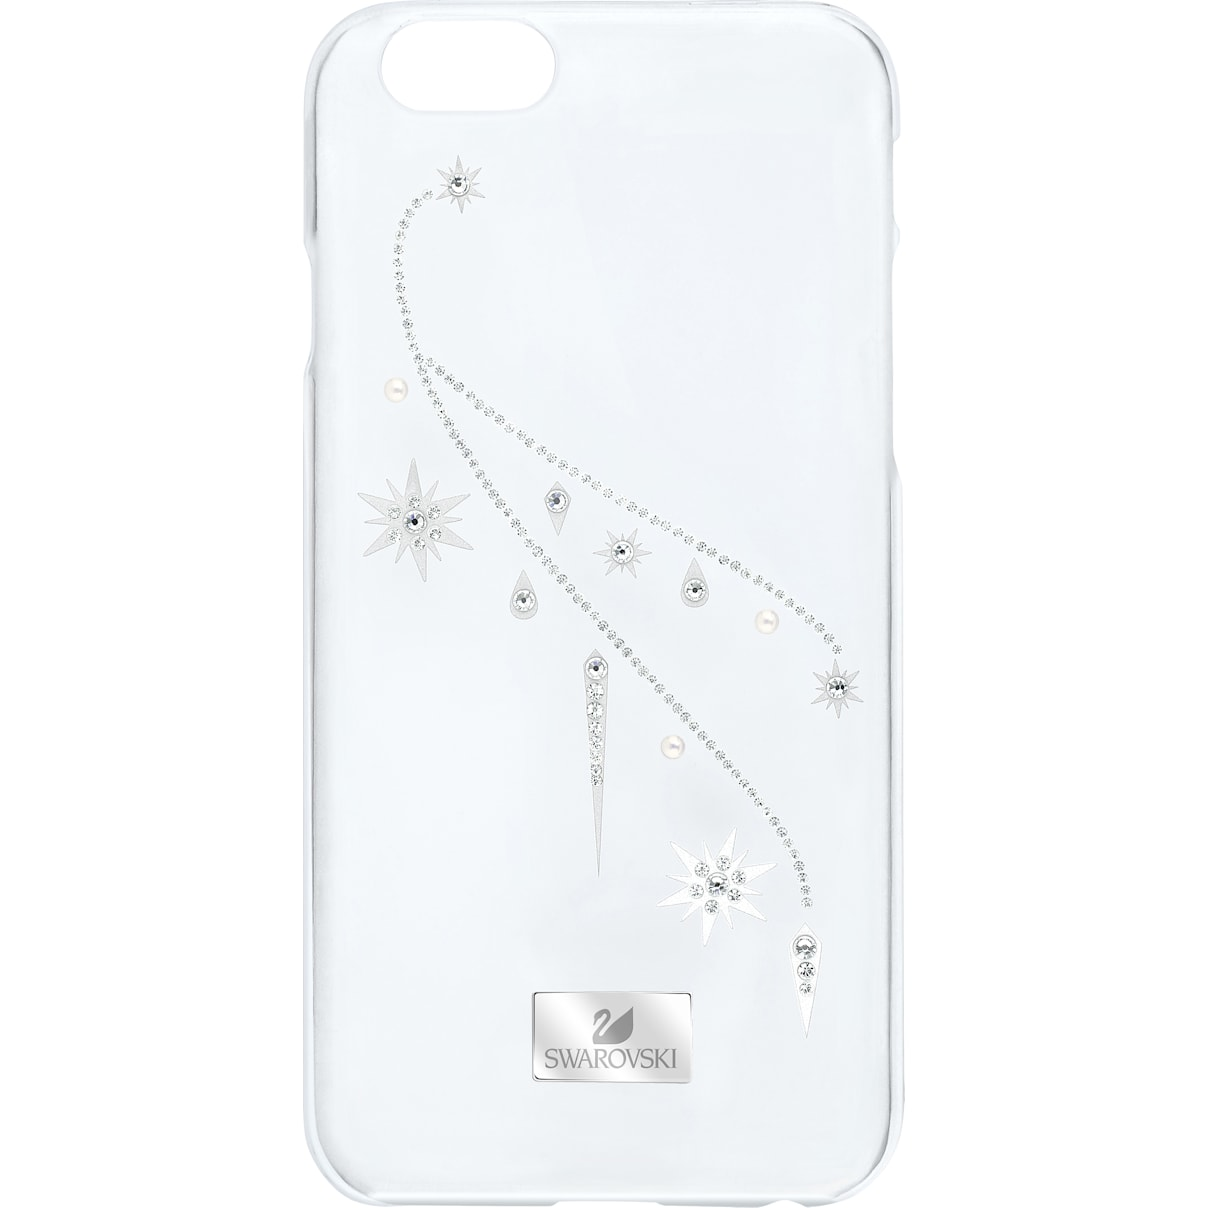 Swarovski Fantastic Smartphone Case, iPhone® 6 Plus / 6s Plus